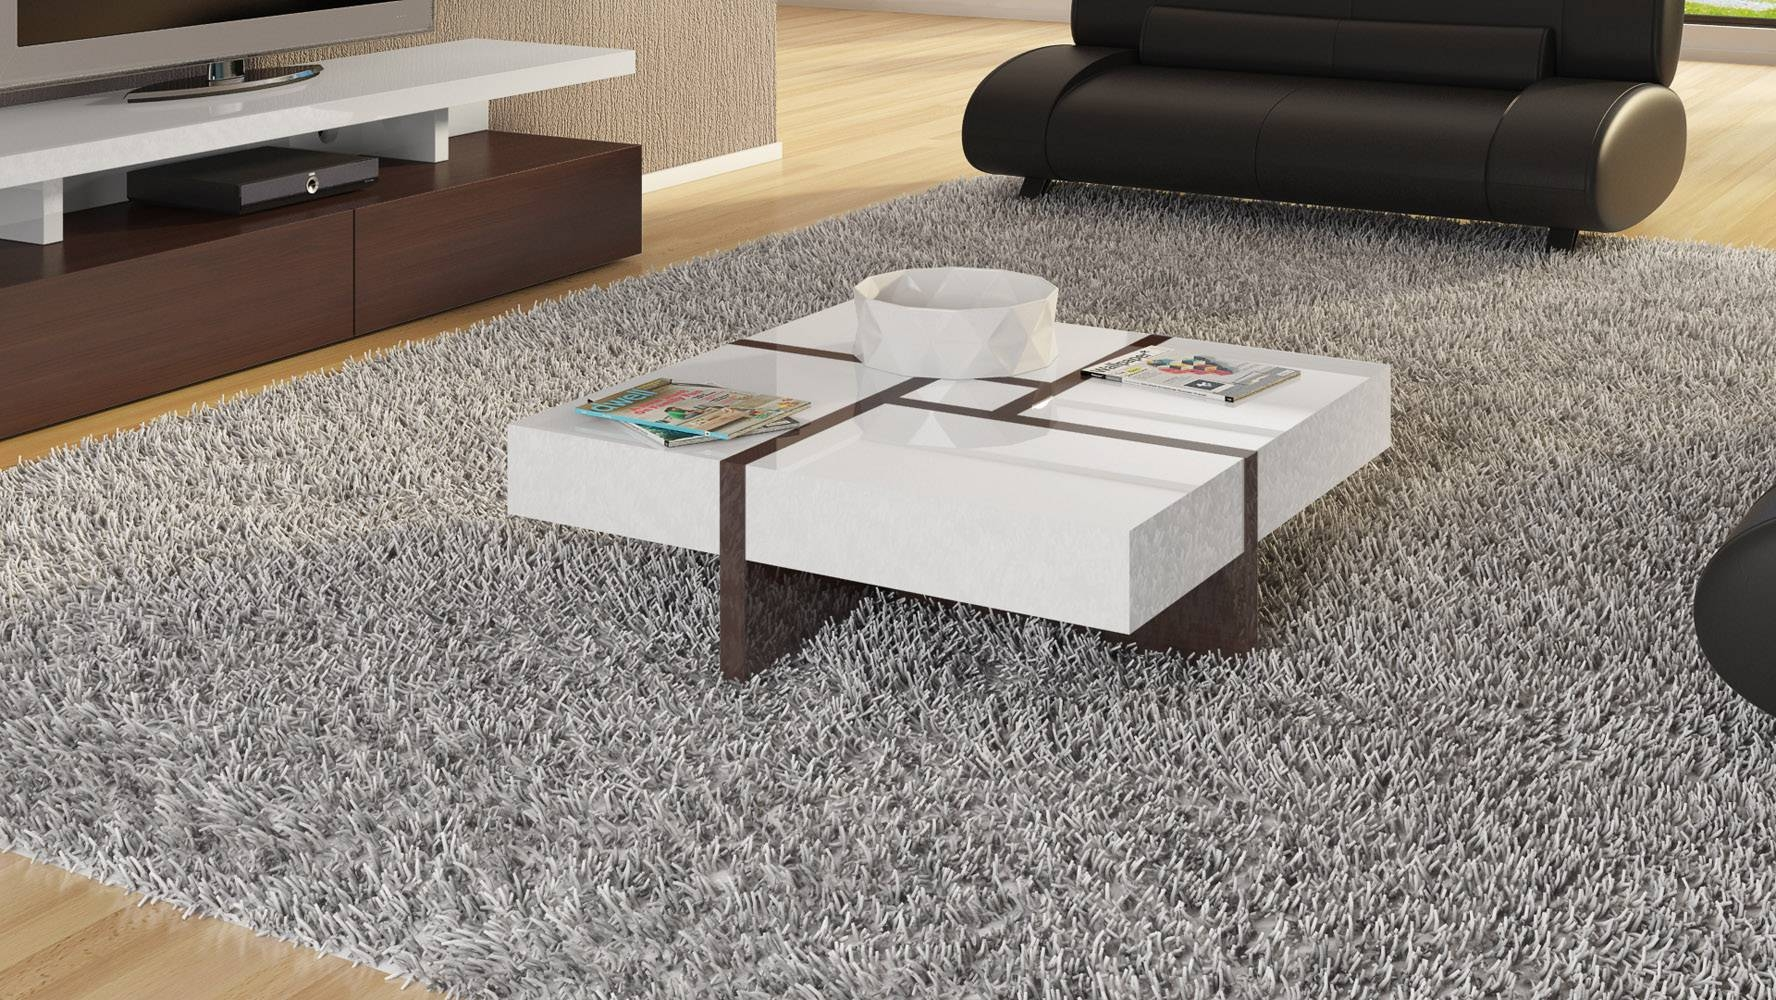 Mcintosh High Gloss Coffee Table With Storage – White Square With Coffee Tables White High Gloss (View 15 of 30)